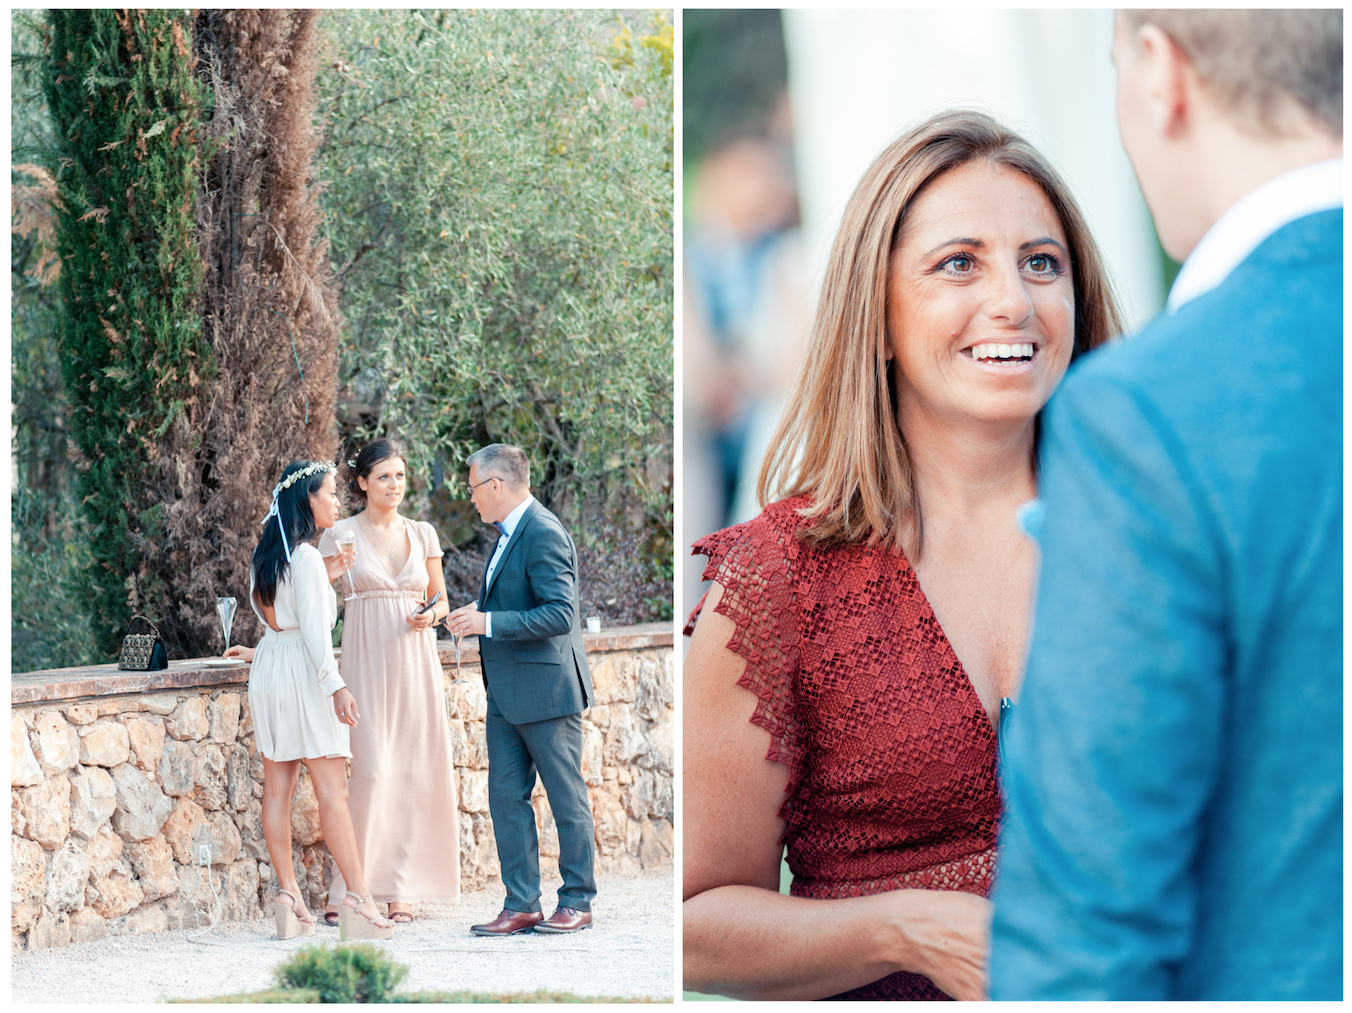 Font-du-Broc-Provence-Wedding-Photographer-06